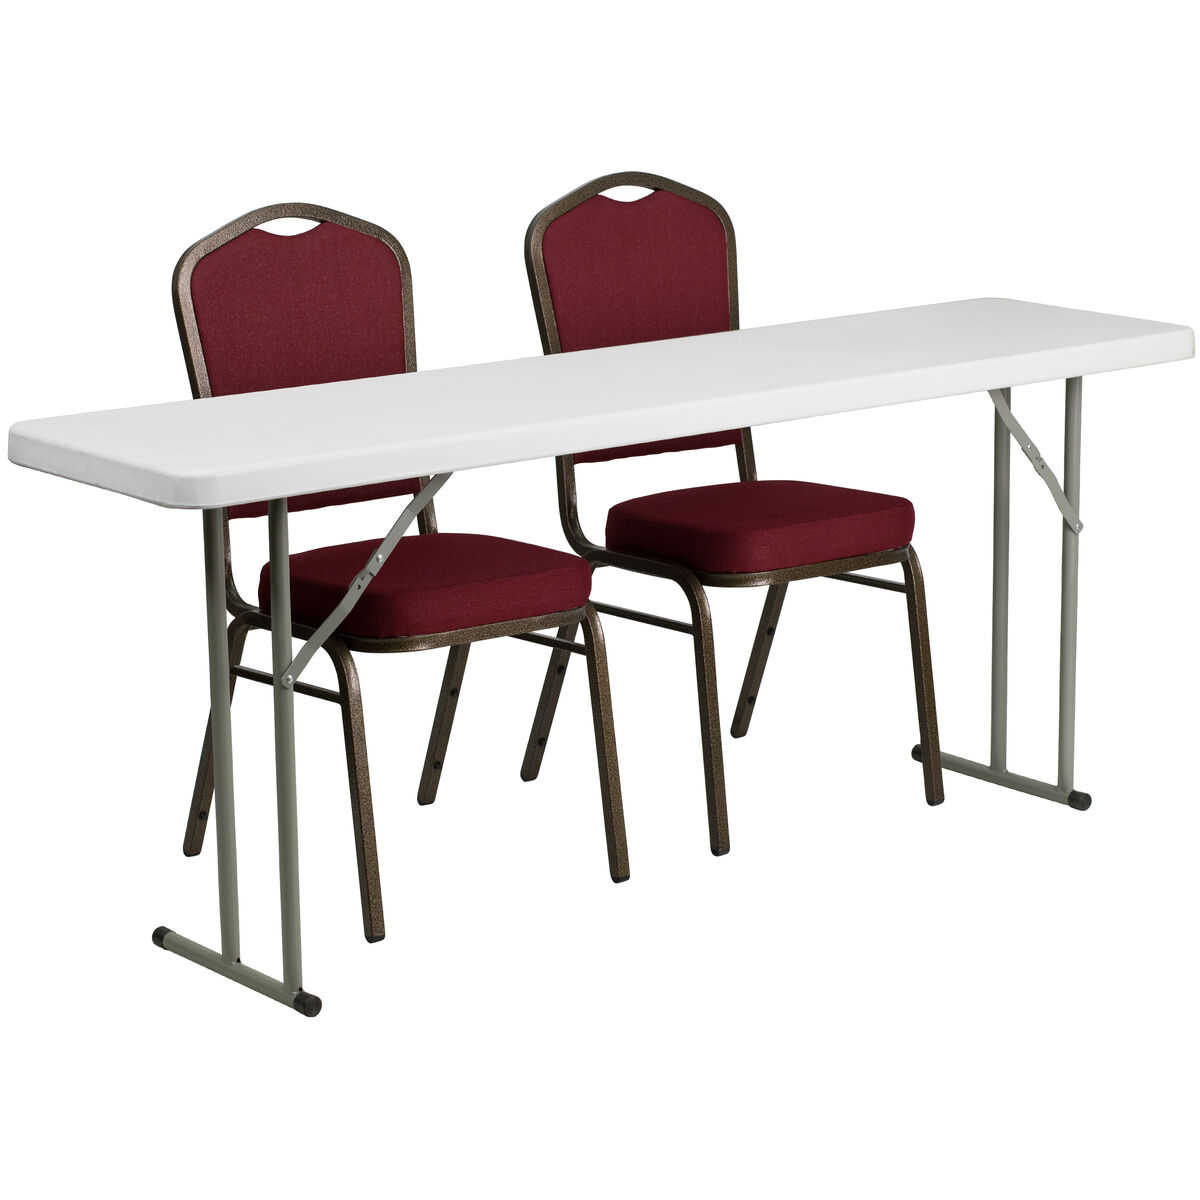 Our 18 X 72 Plastic Folding Training Table Set With 2 Crown